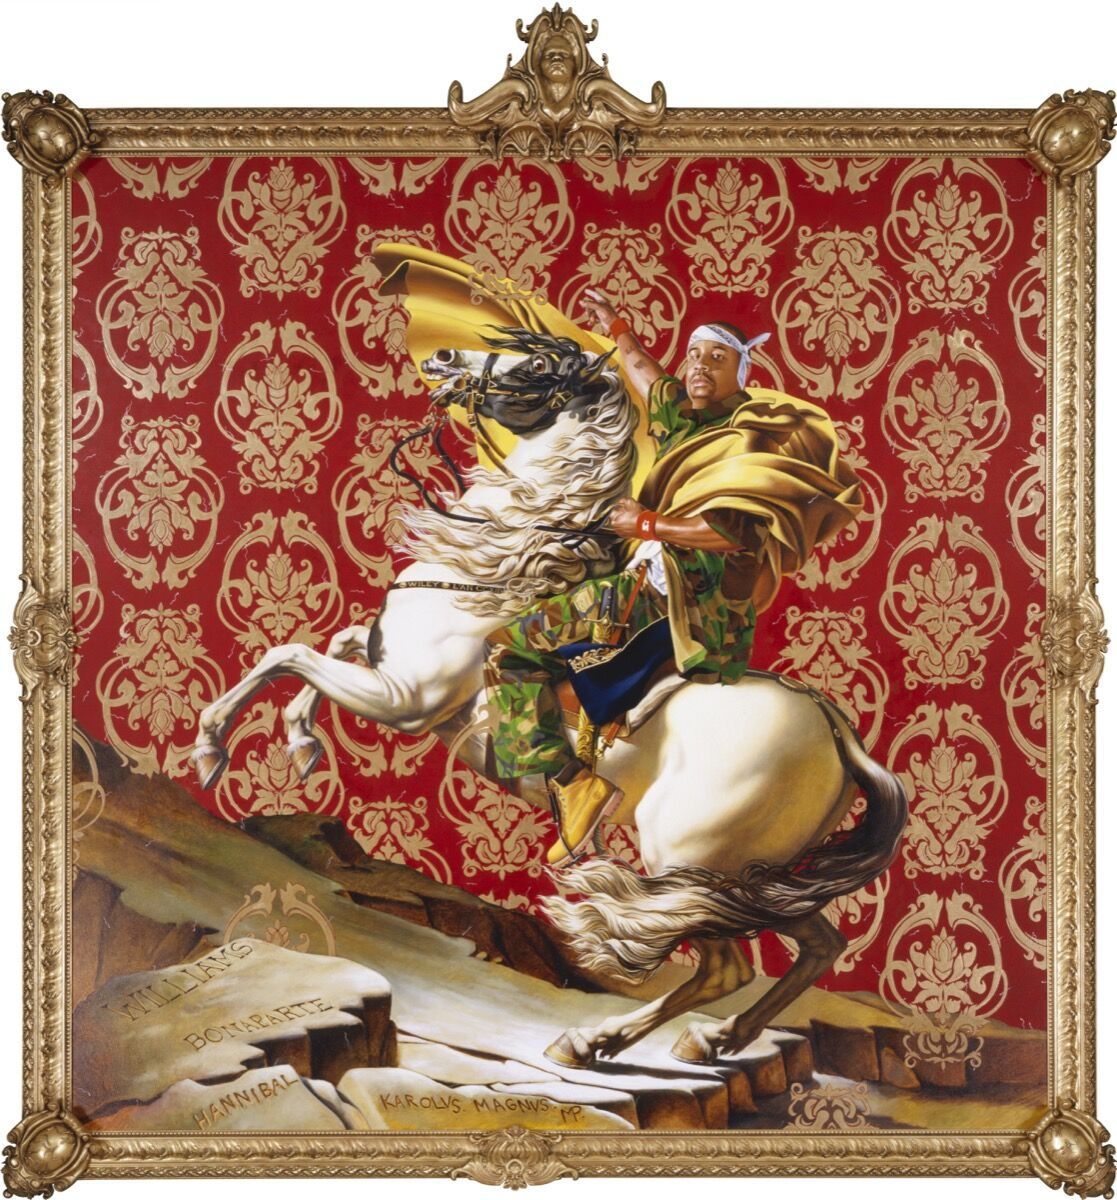 Kehinde Wiley, Napoleon Leading the Army over the Alps, 2005. Courtesy of Brooklyn Museum. © Kehinde Wiley. Courtesy of Prestel Publishing.